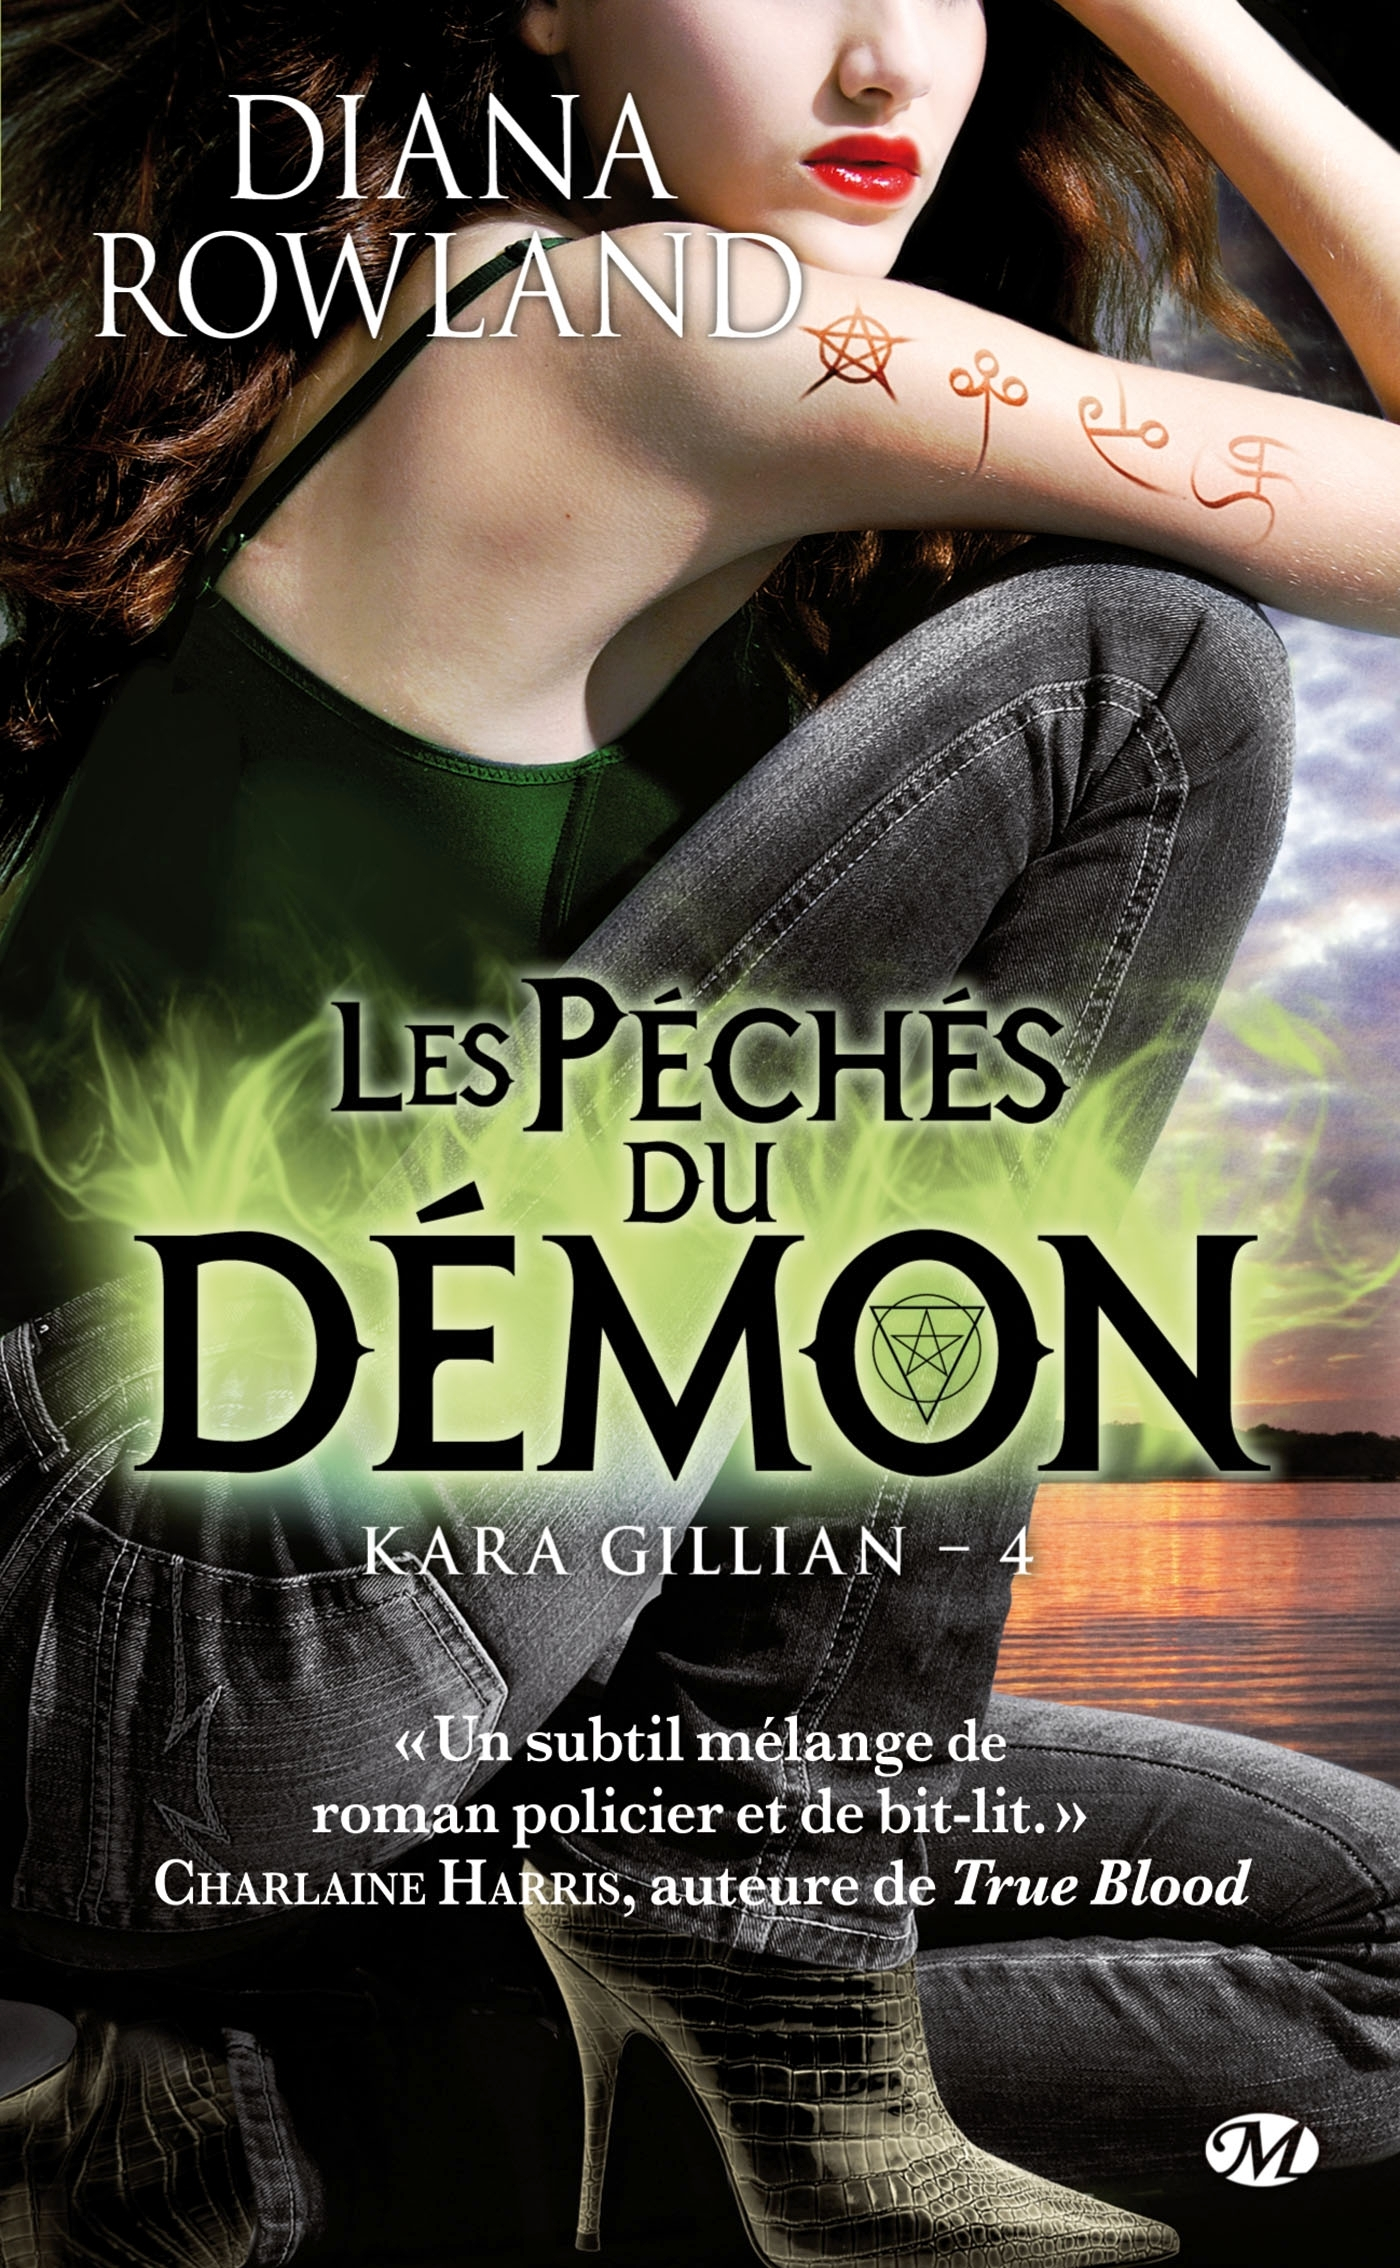 KARA GILLIAN, T4 : LES PECHES DU DEMON